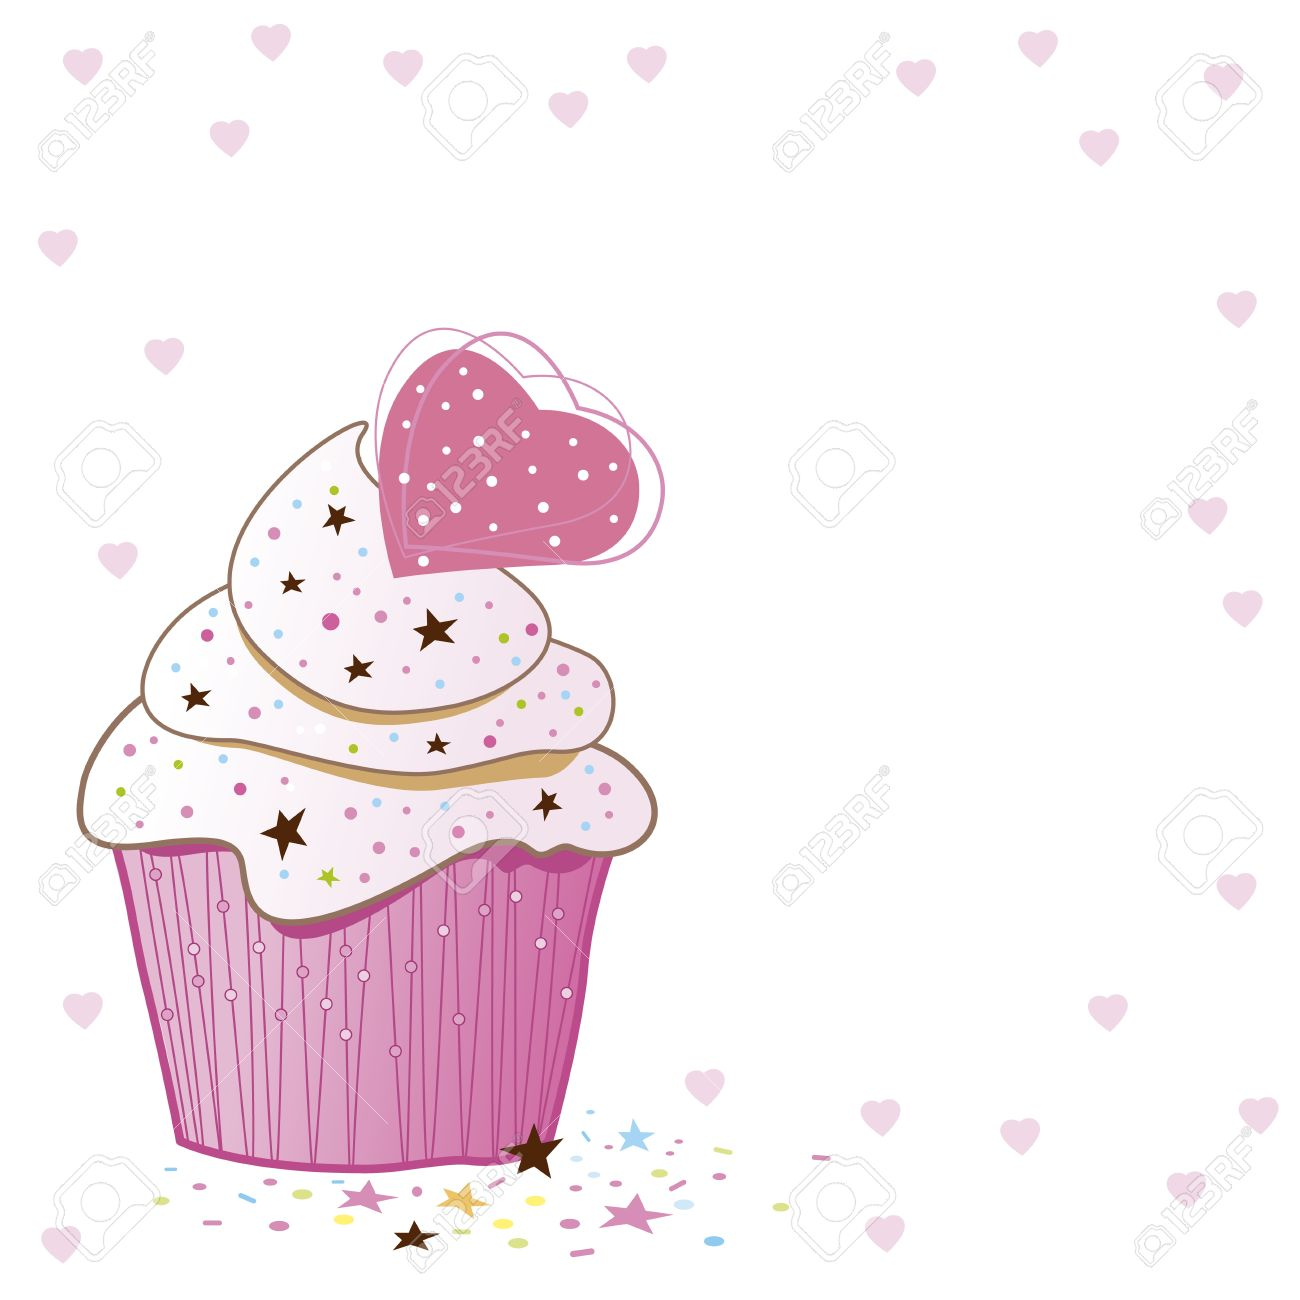 Cupcakes design on white background Stock Vector - 16436403